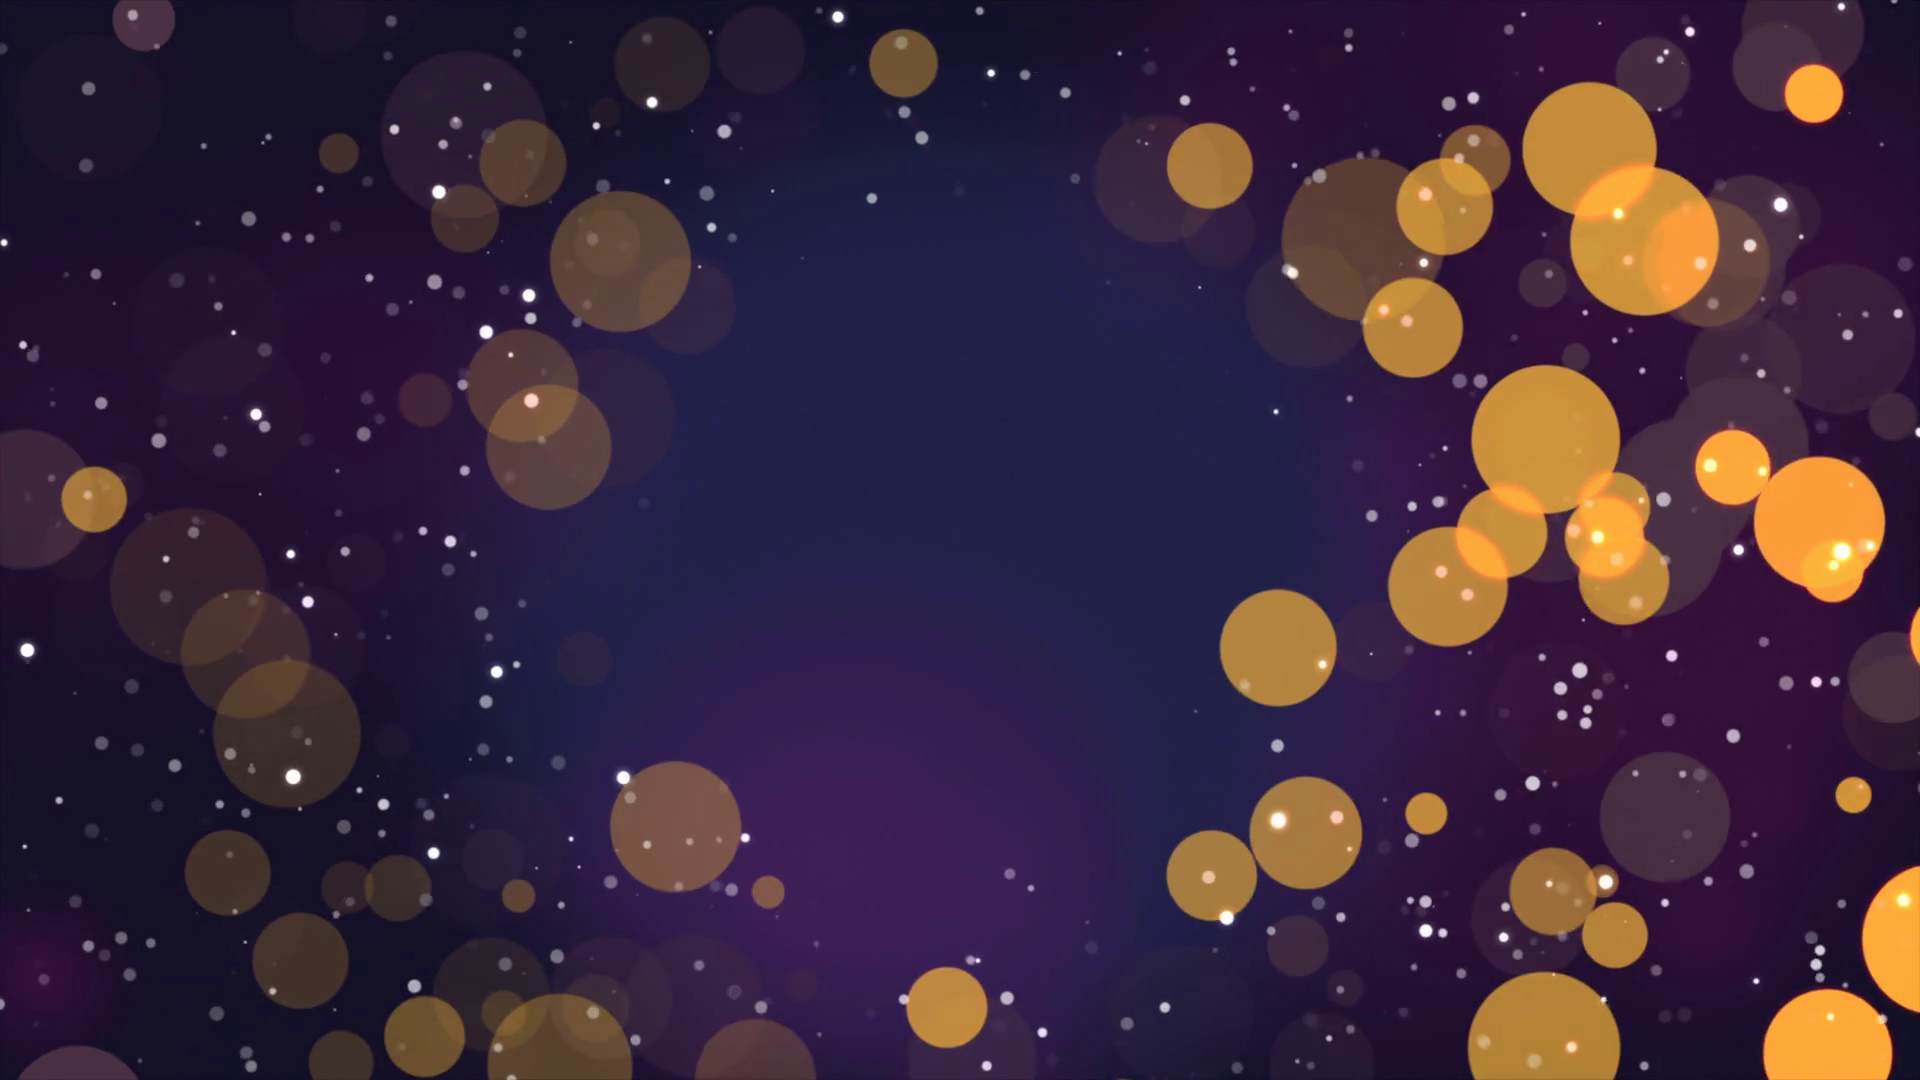 Pink And Gold Sparkle Background 4K Hd.